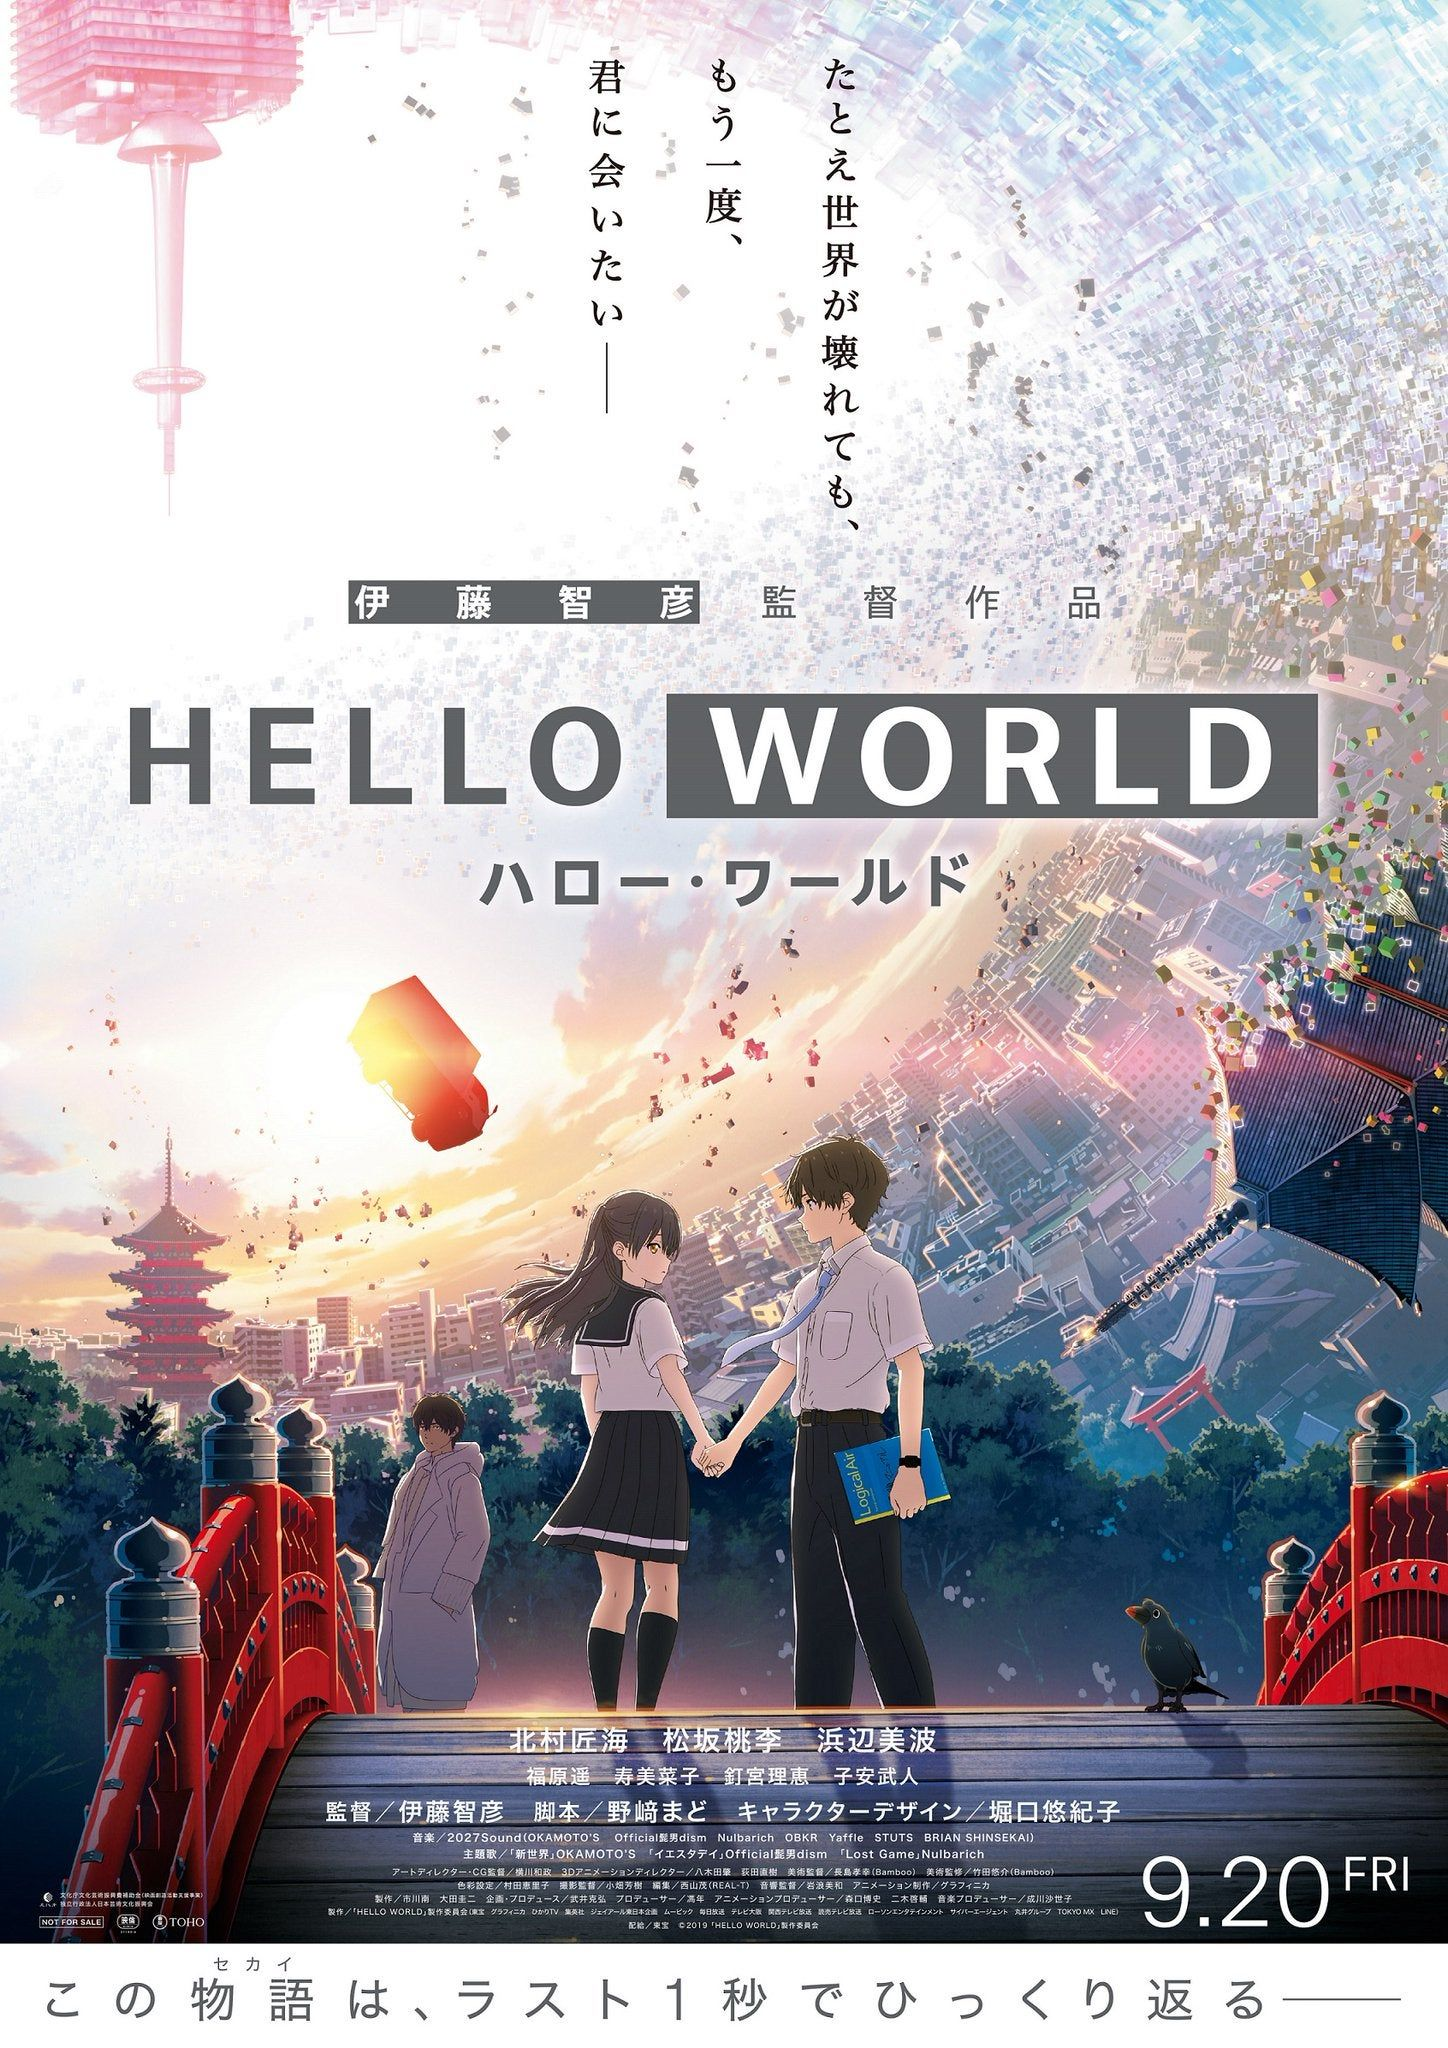 Hello World official poster (Toho / Graphinica, a film by